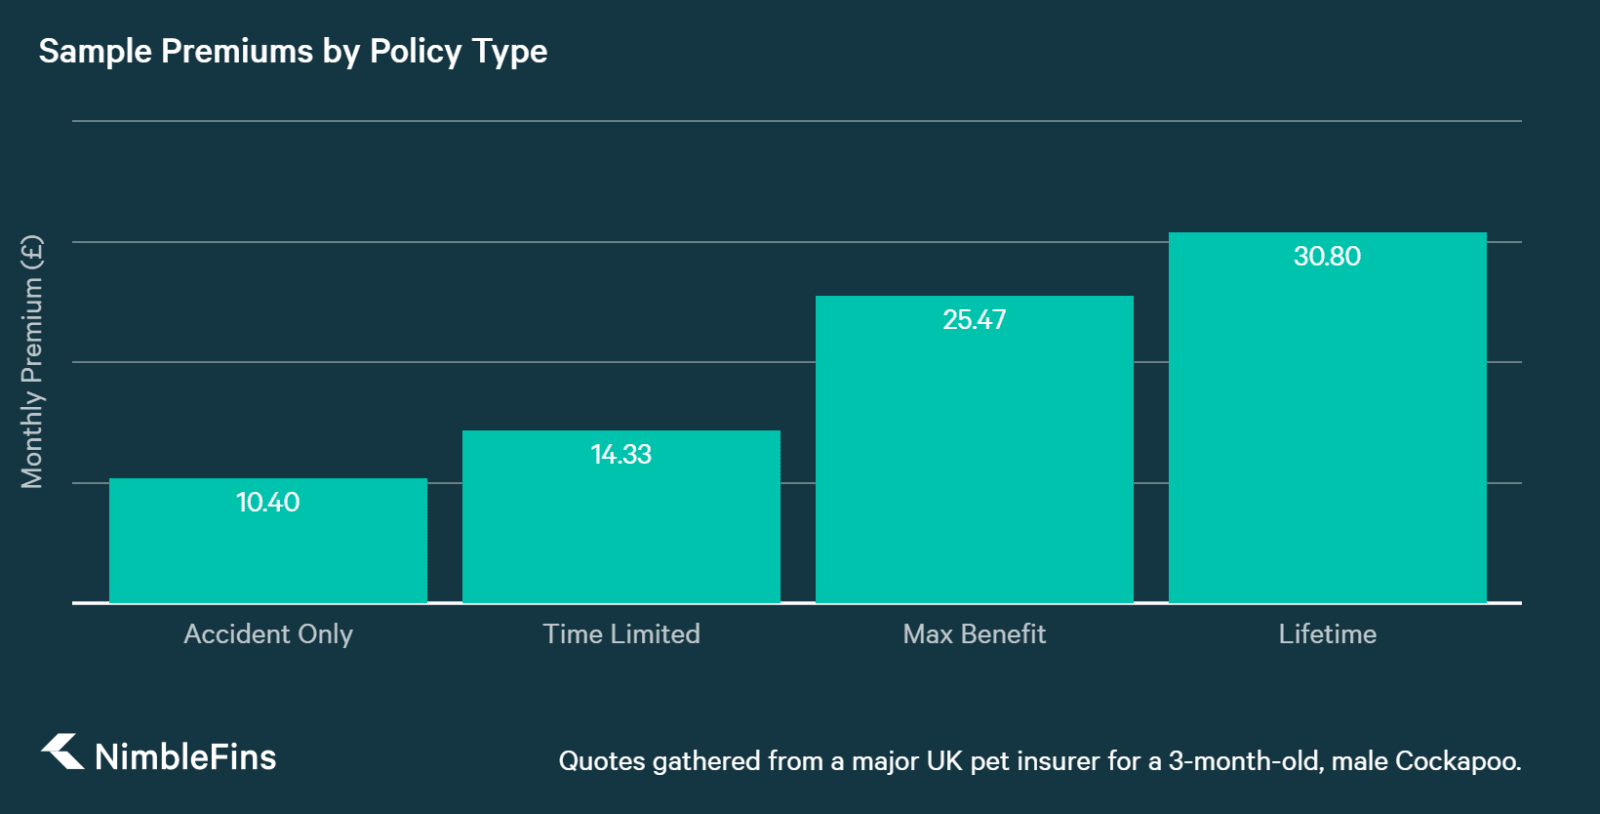 More Than quotes for pet insurance by policy type